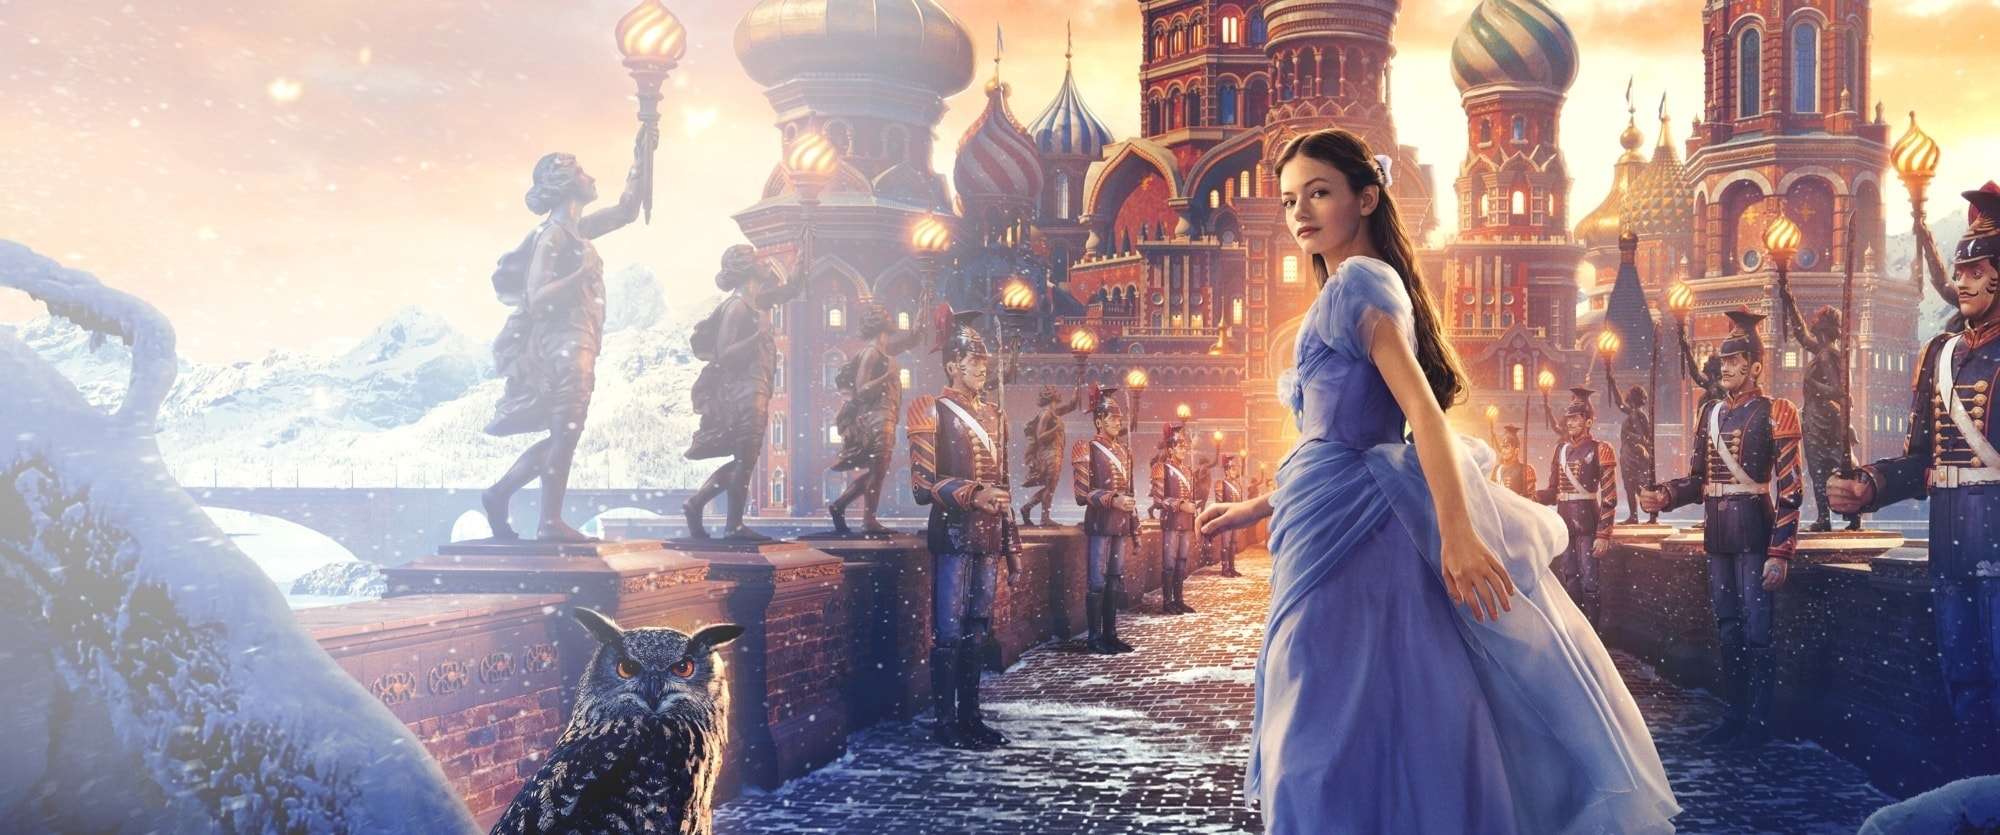 The Nutcracker and the Four Realms | Soon in cinemas